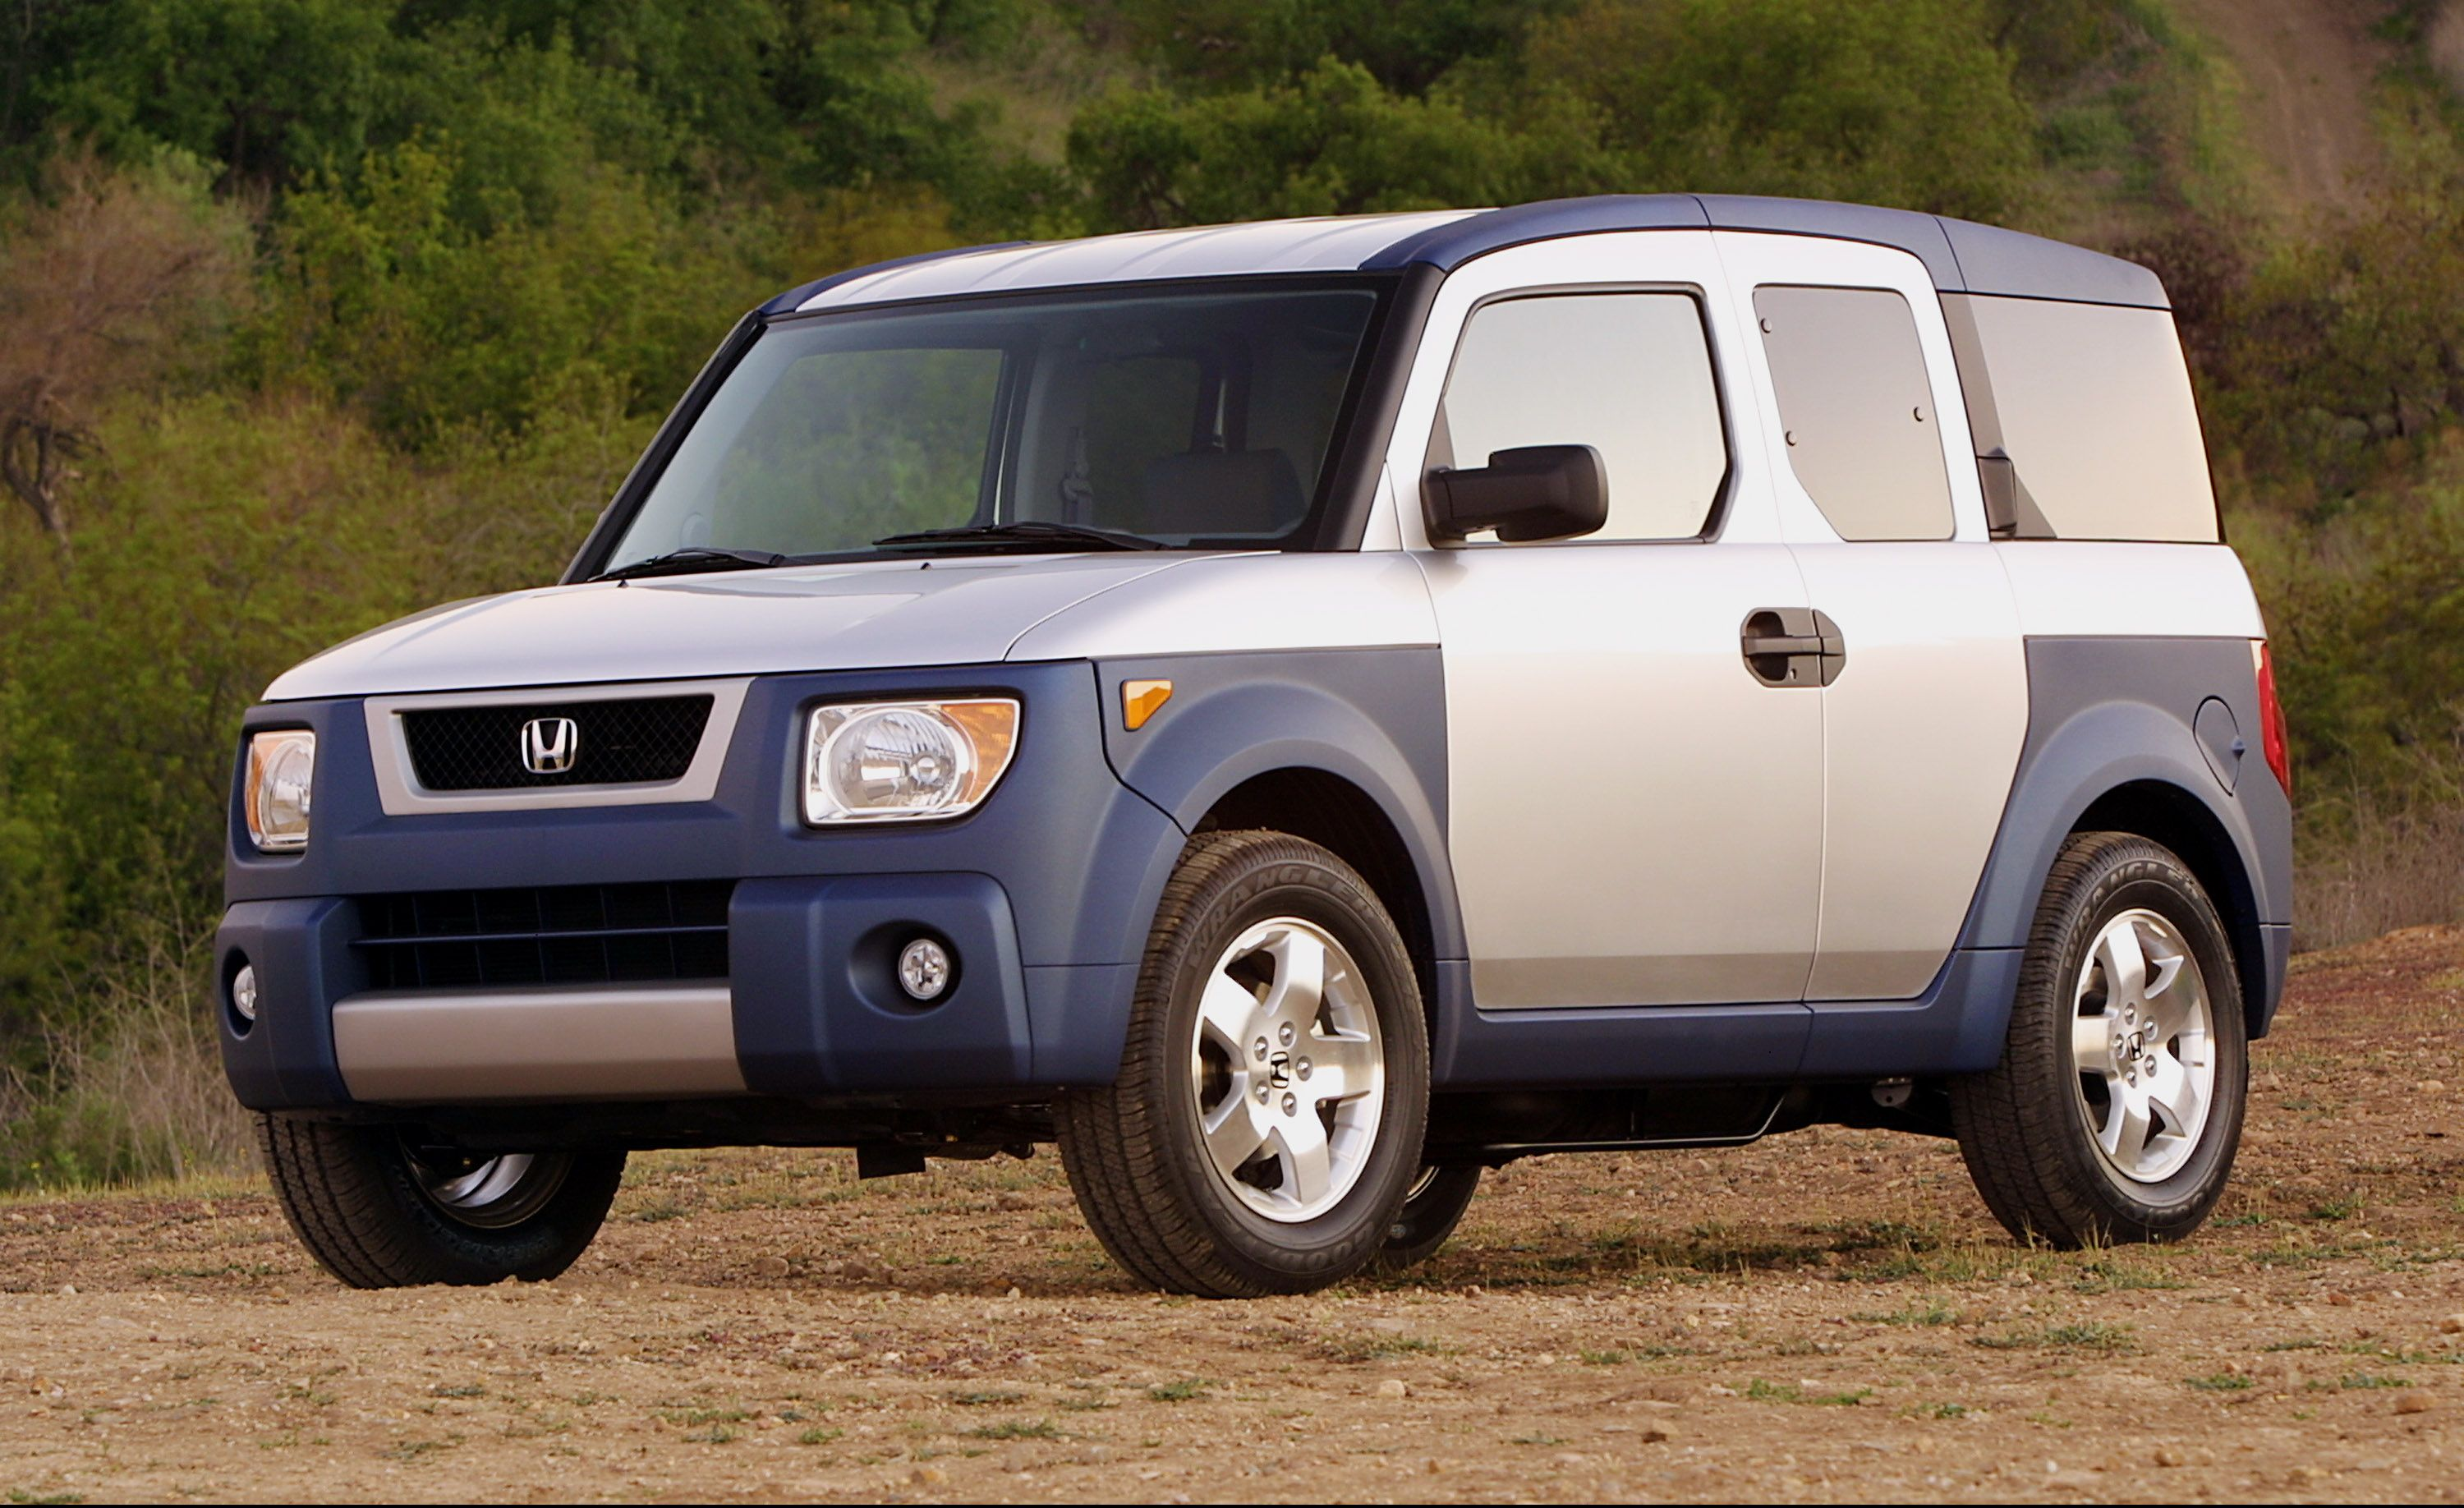 Honda Element (2003–2011) The Honda Element seemed to be inspired by Picasso's Figure dans un Fauteuil, but it's no exercise in Cubism. Instead, it looks like a mail truck got busy with a Honda CR-V—actually, that's not far from the truth, as this relentlessly rectilinear SUV was based on the un-weird CR-V crossover.